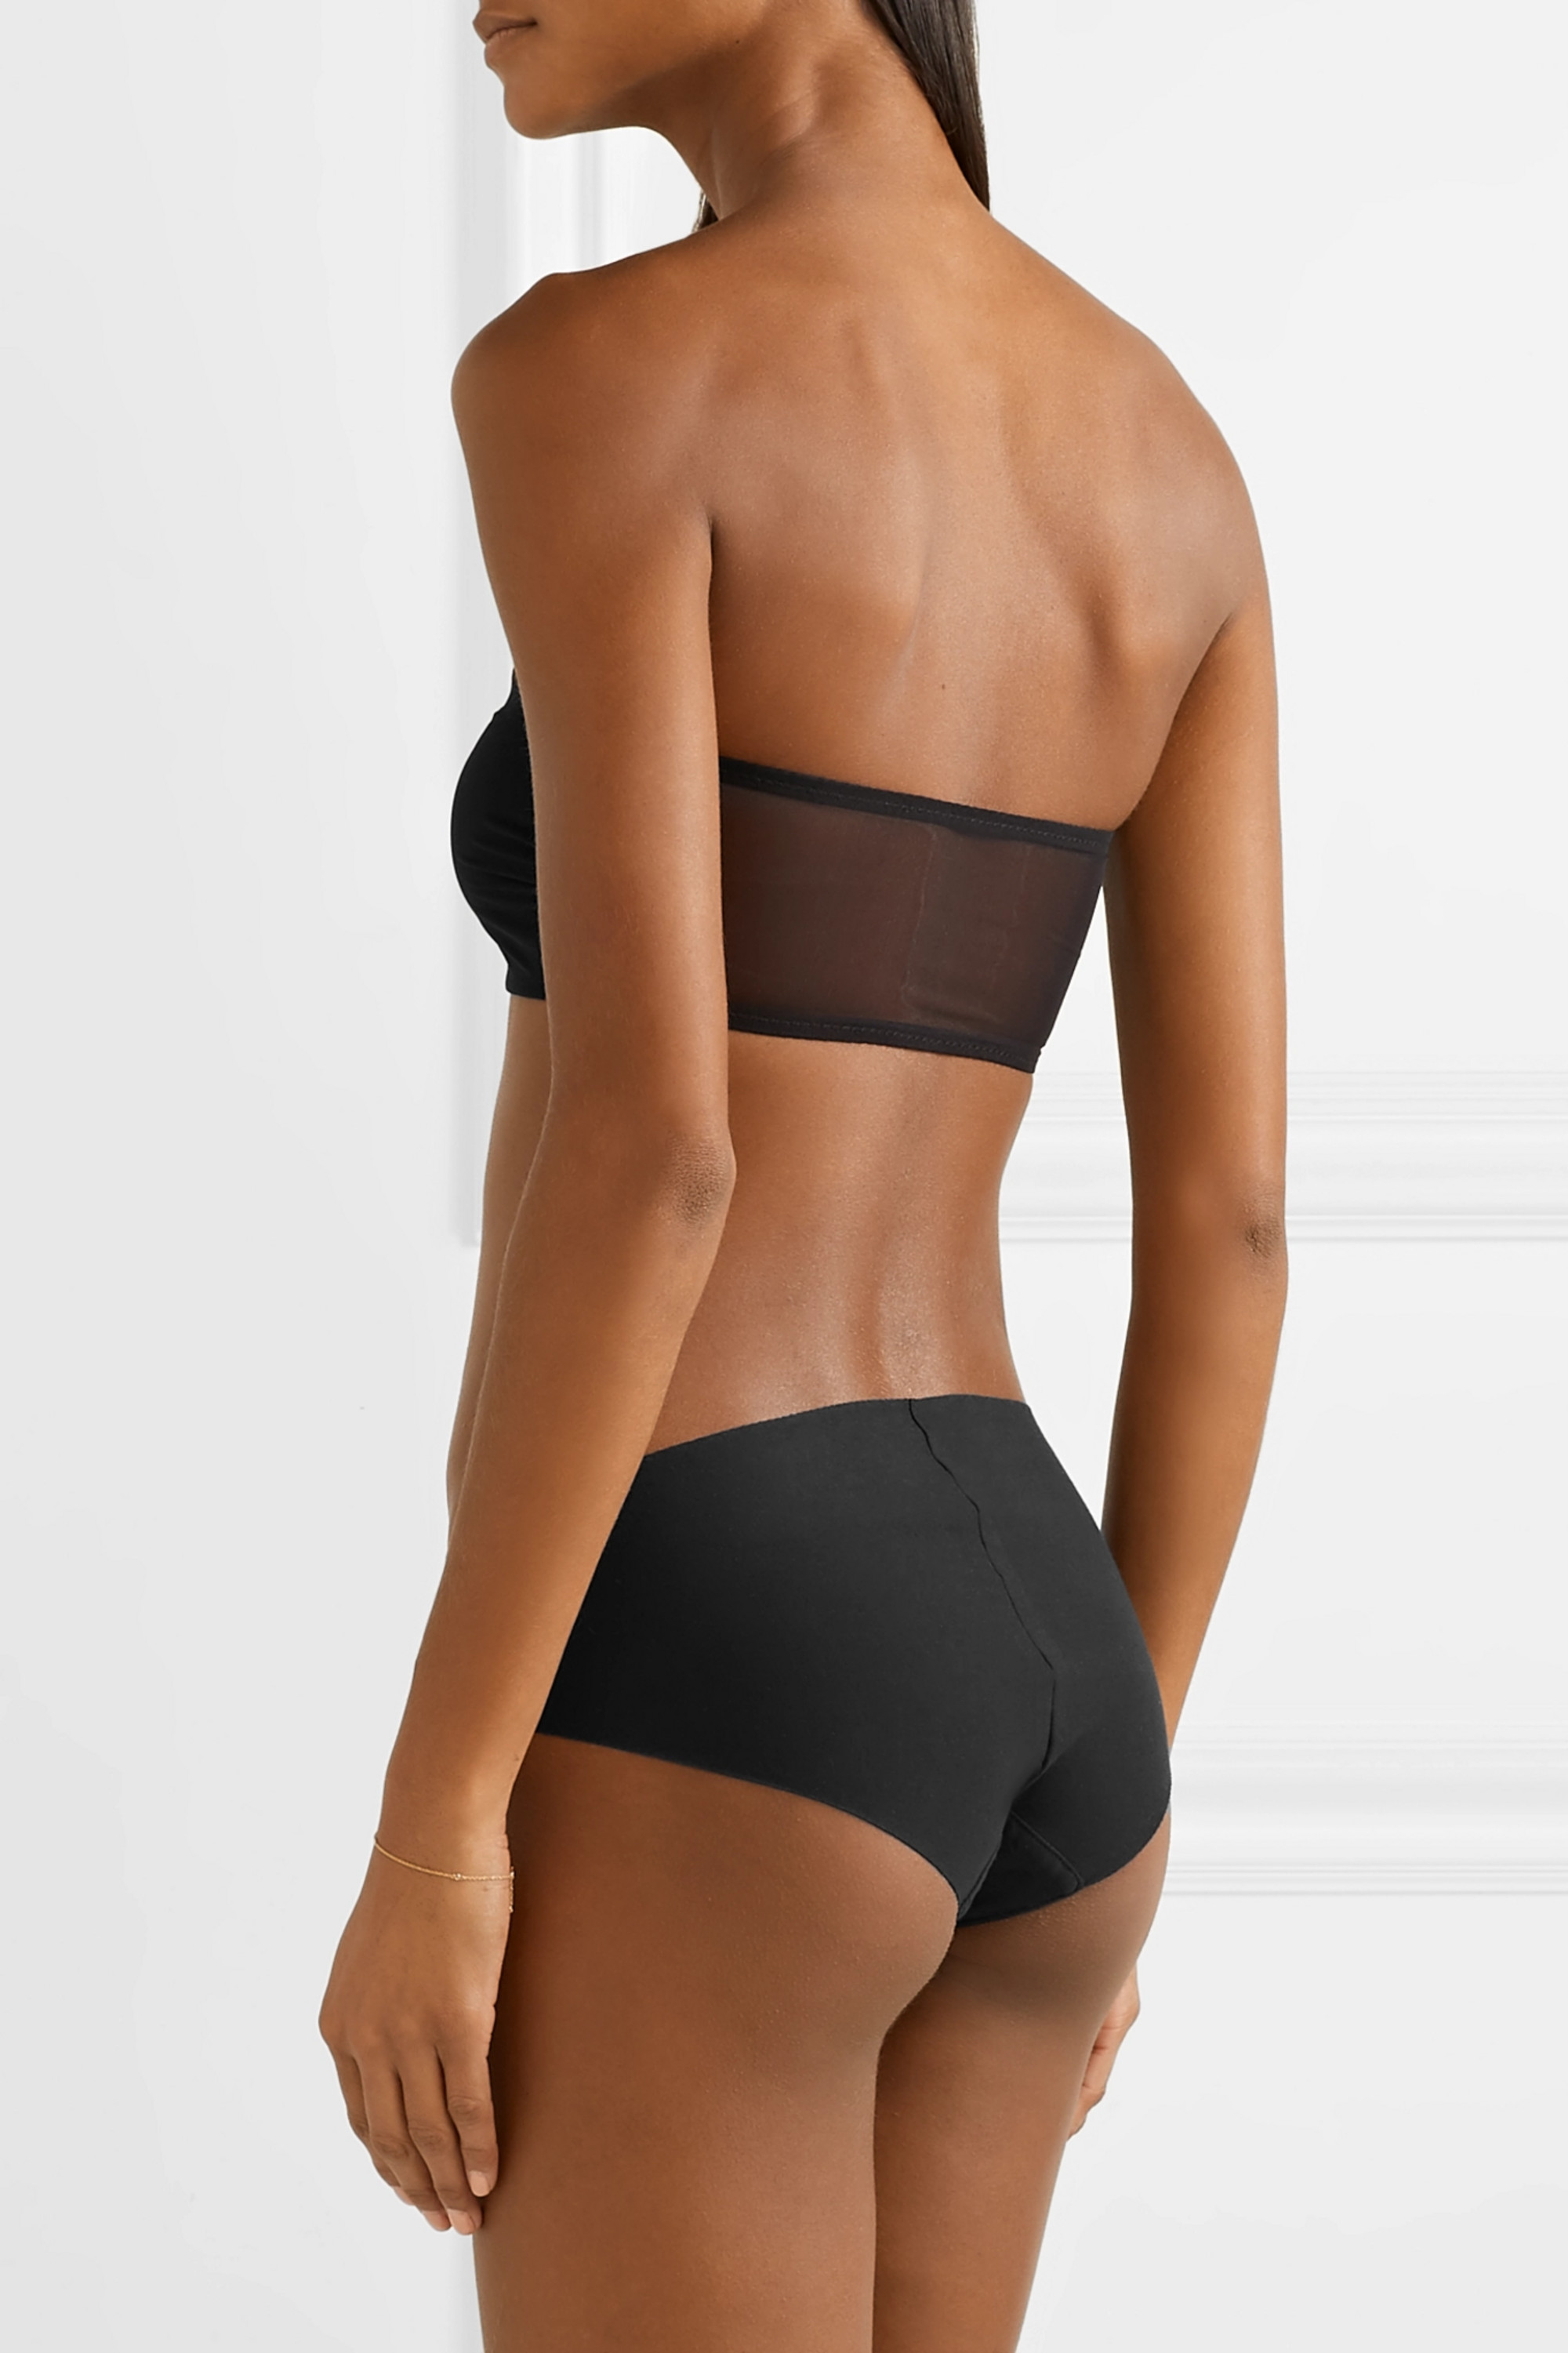 Commando Chic Mesh stretch soft-cup bandeau bra